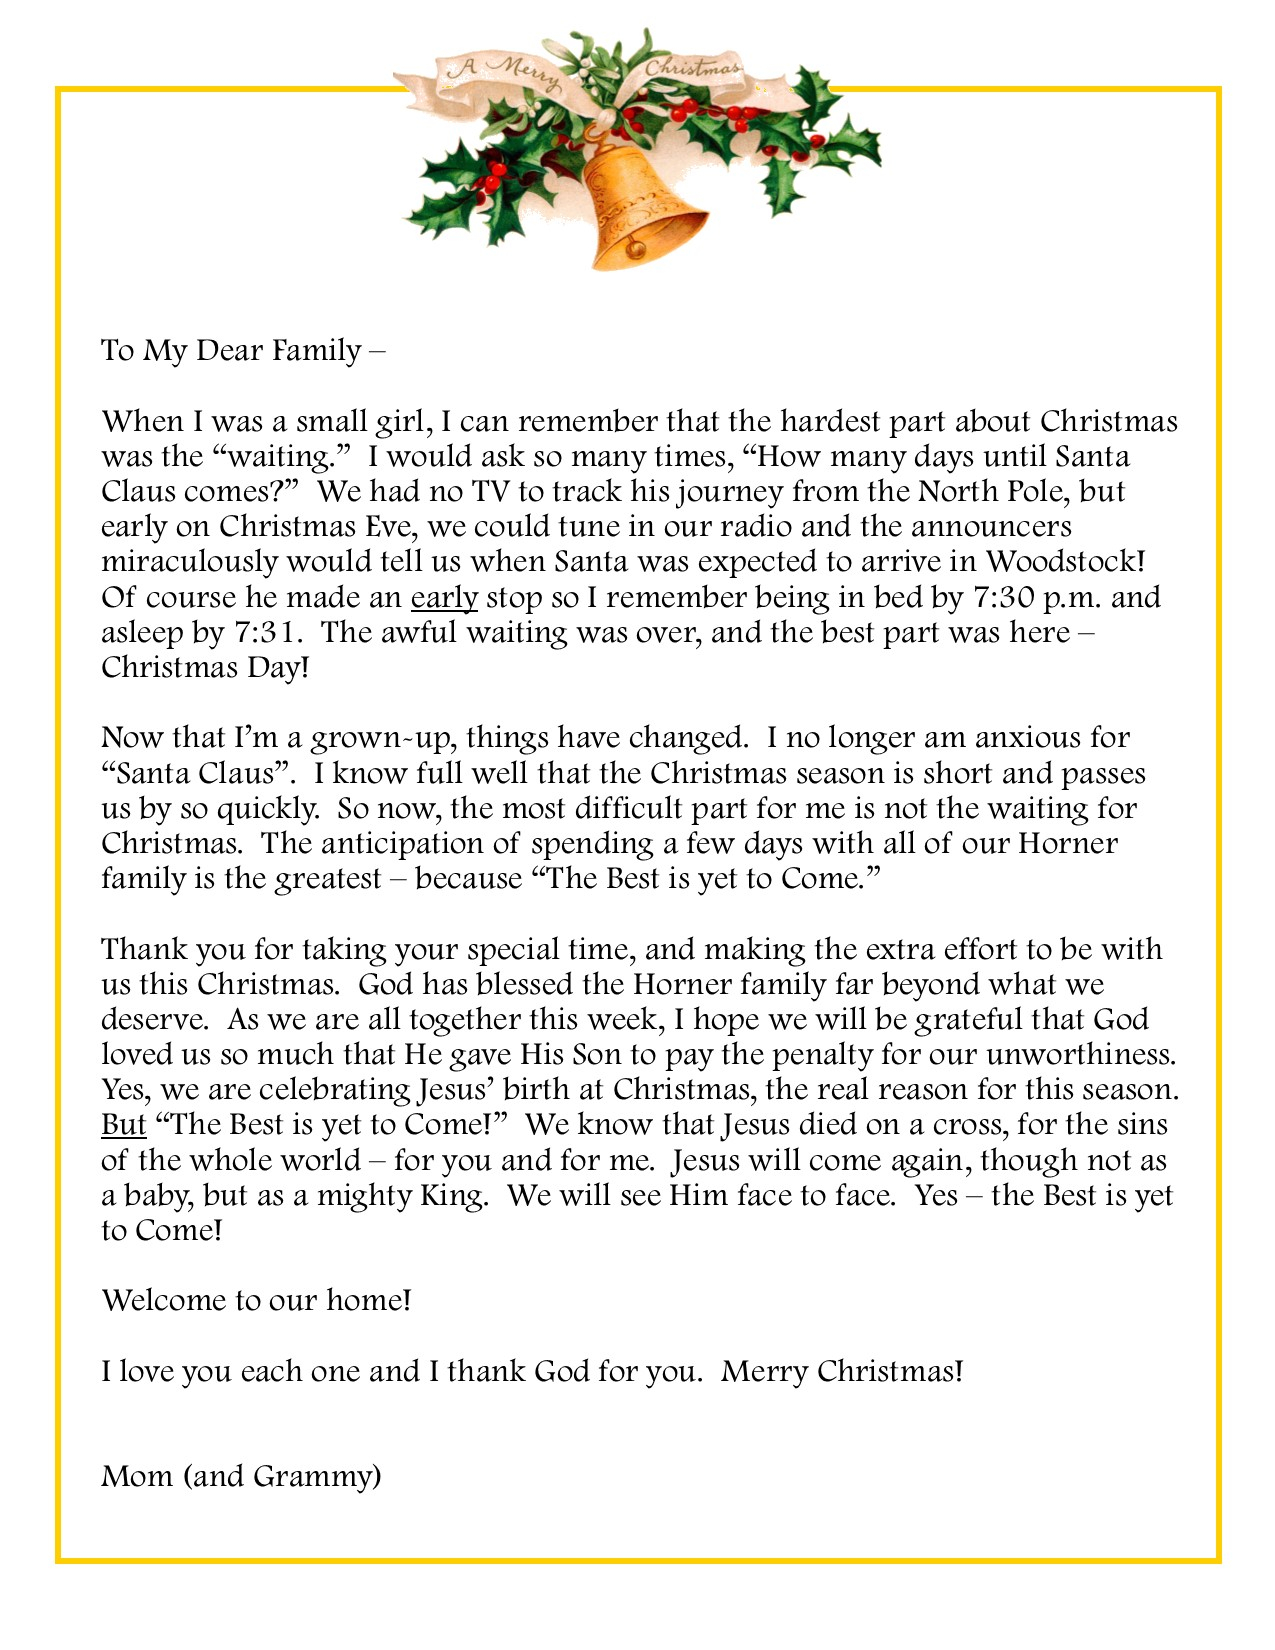 Christmas Party Donation Letter Template - Family Reunion Interest Letter Choice Image Letter format formal